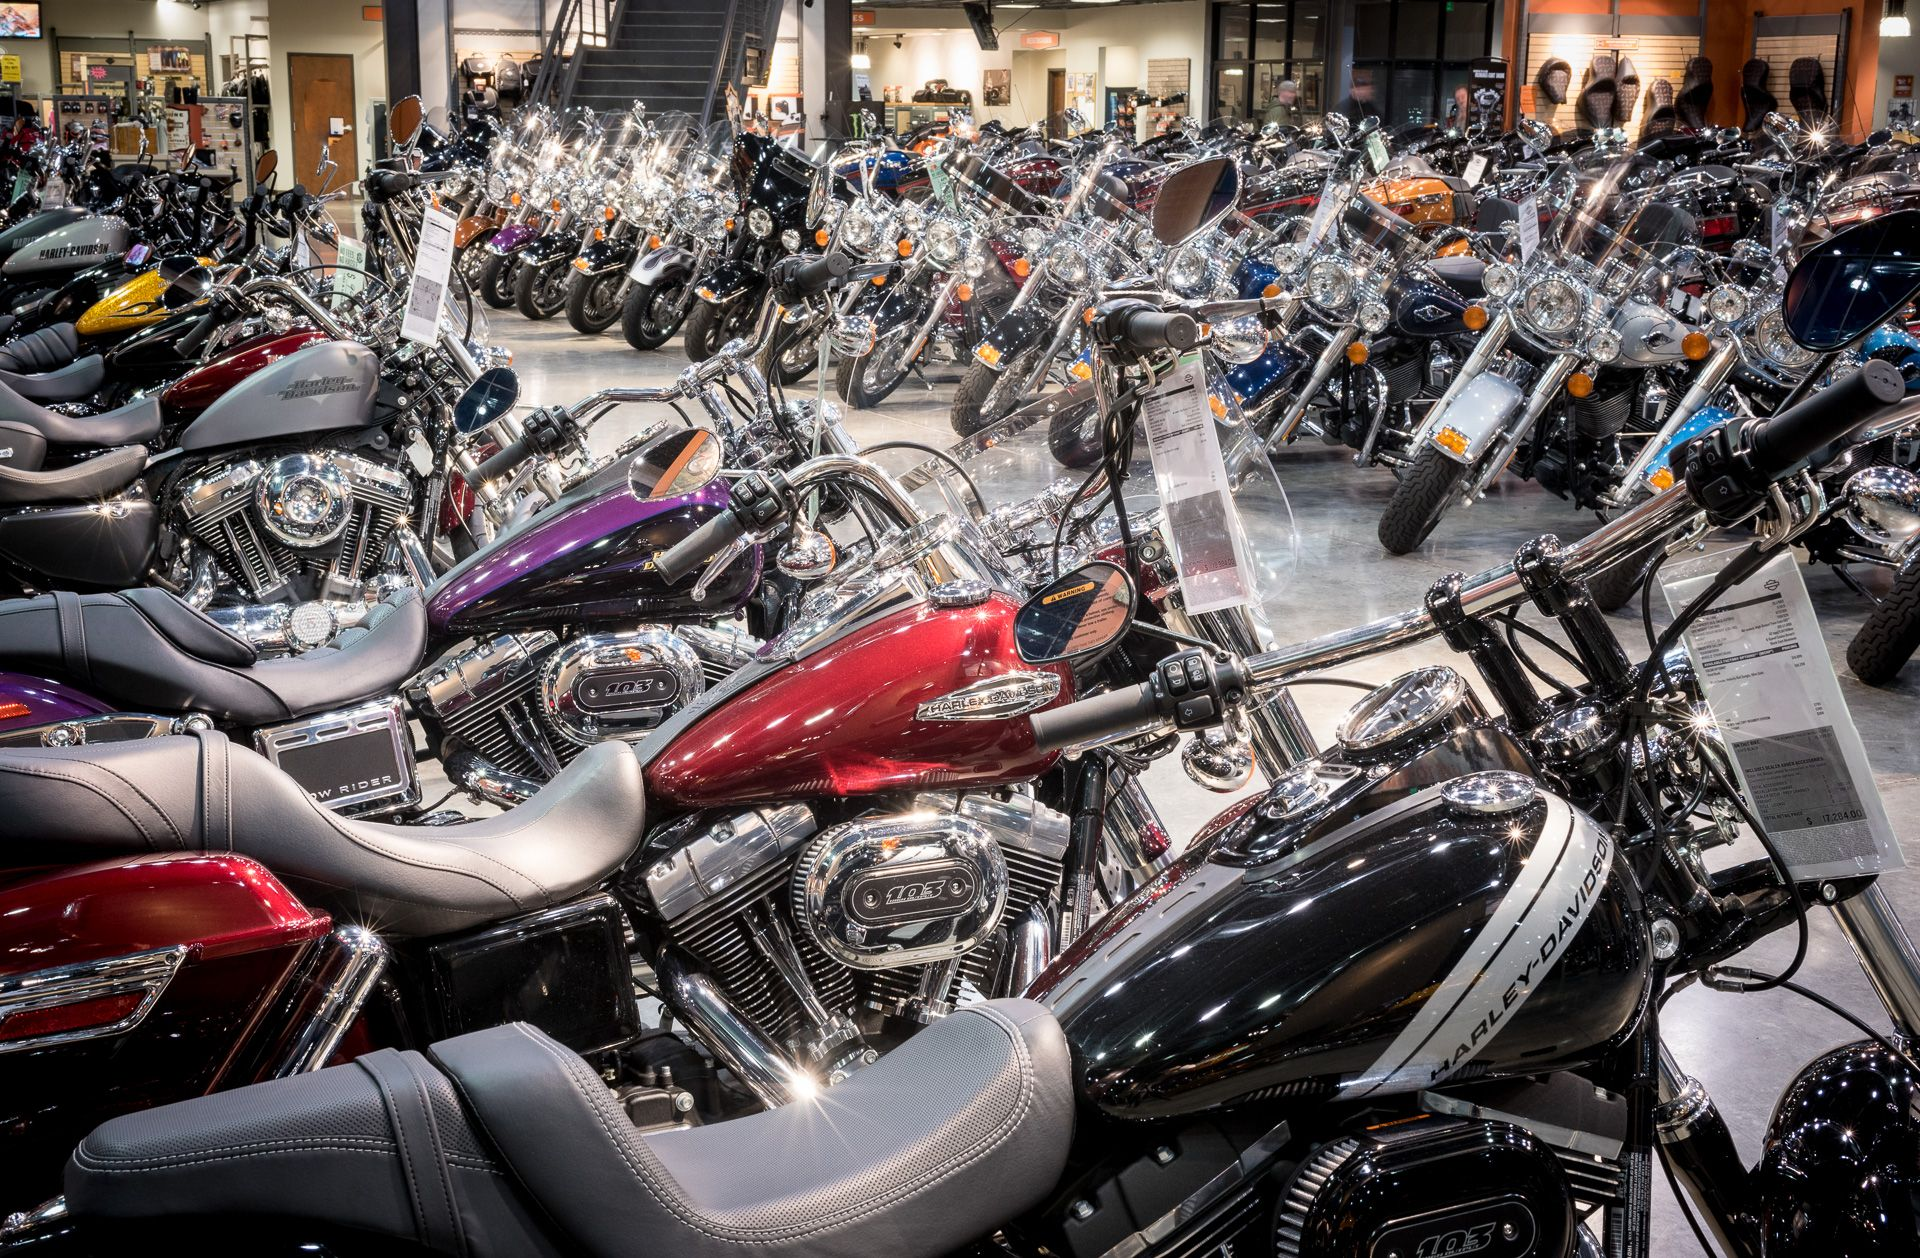 Pin By Lawless Harley Davidson On All Things Harley